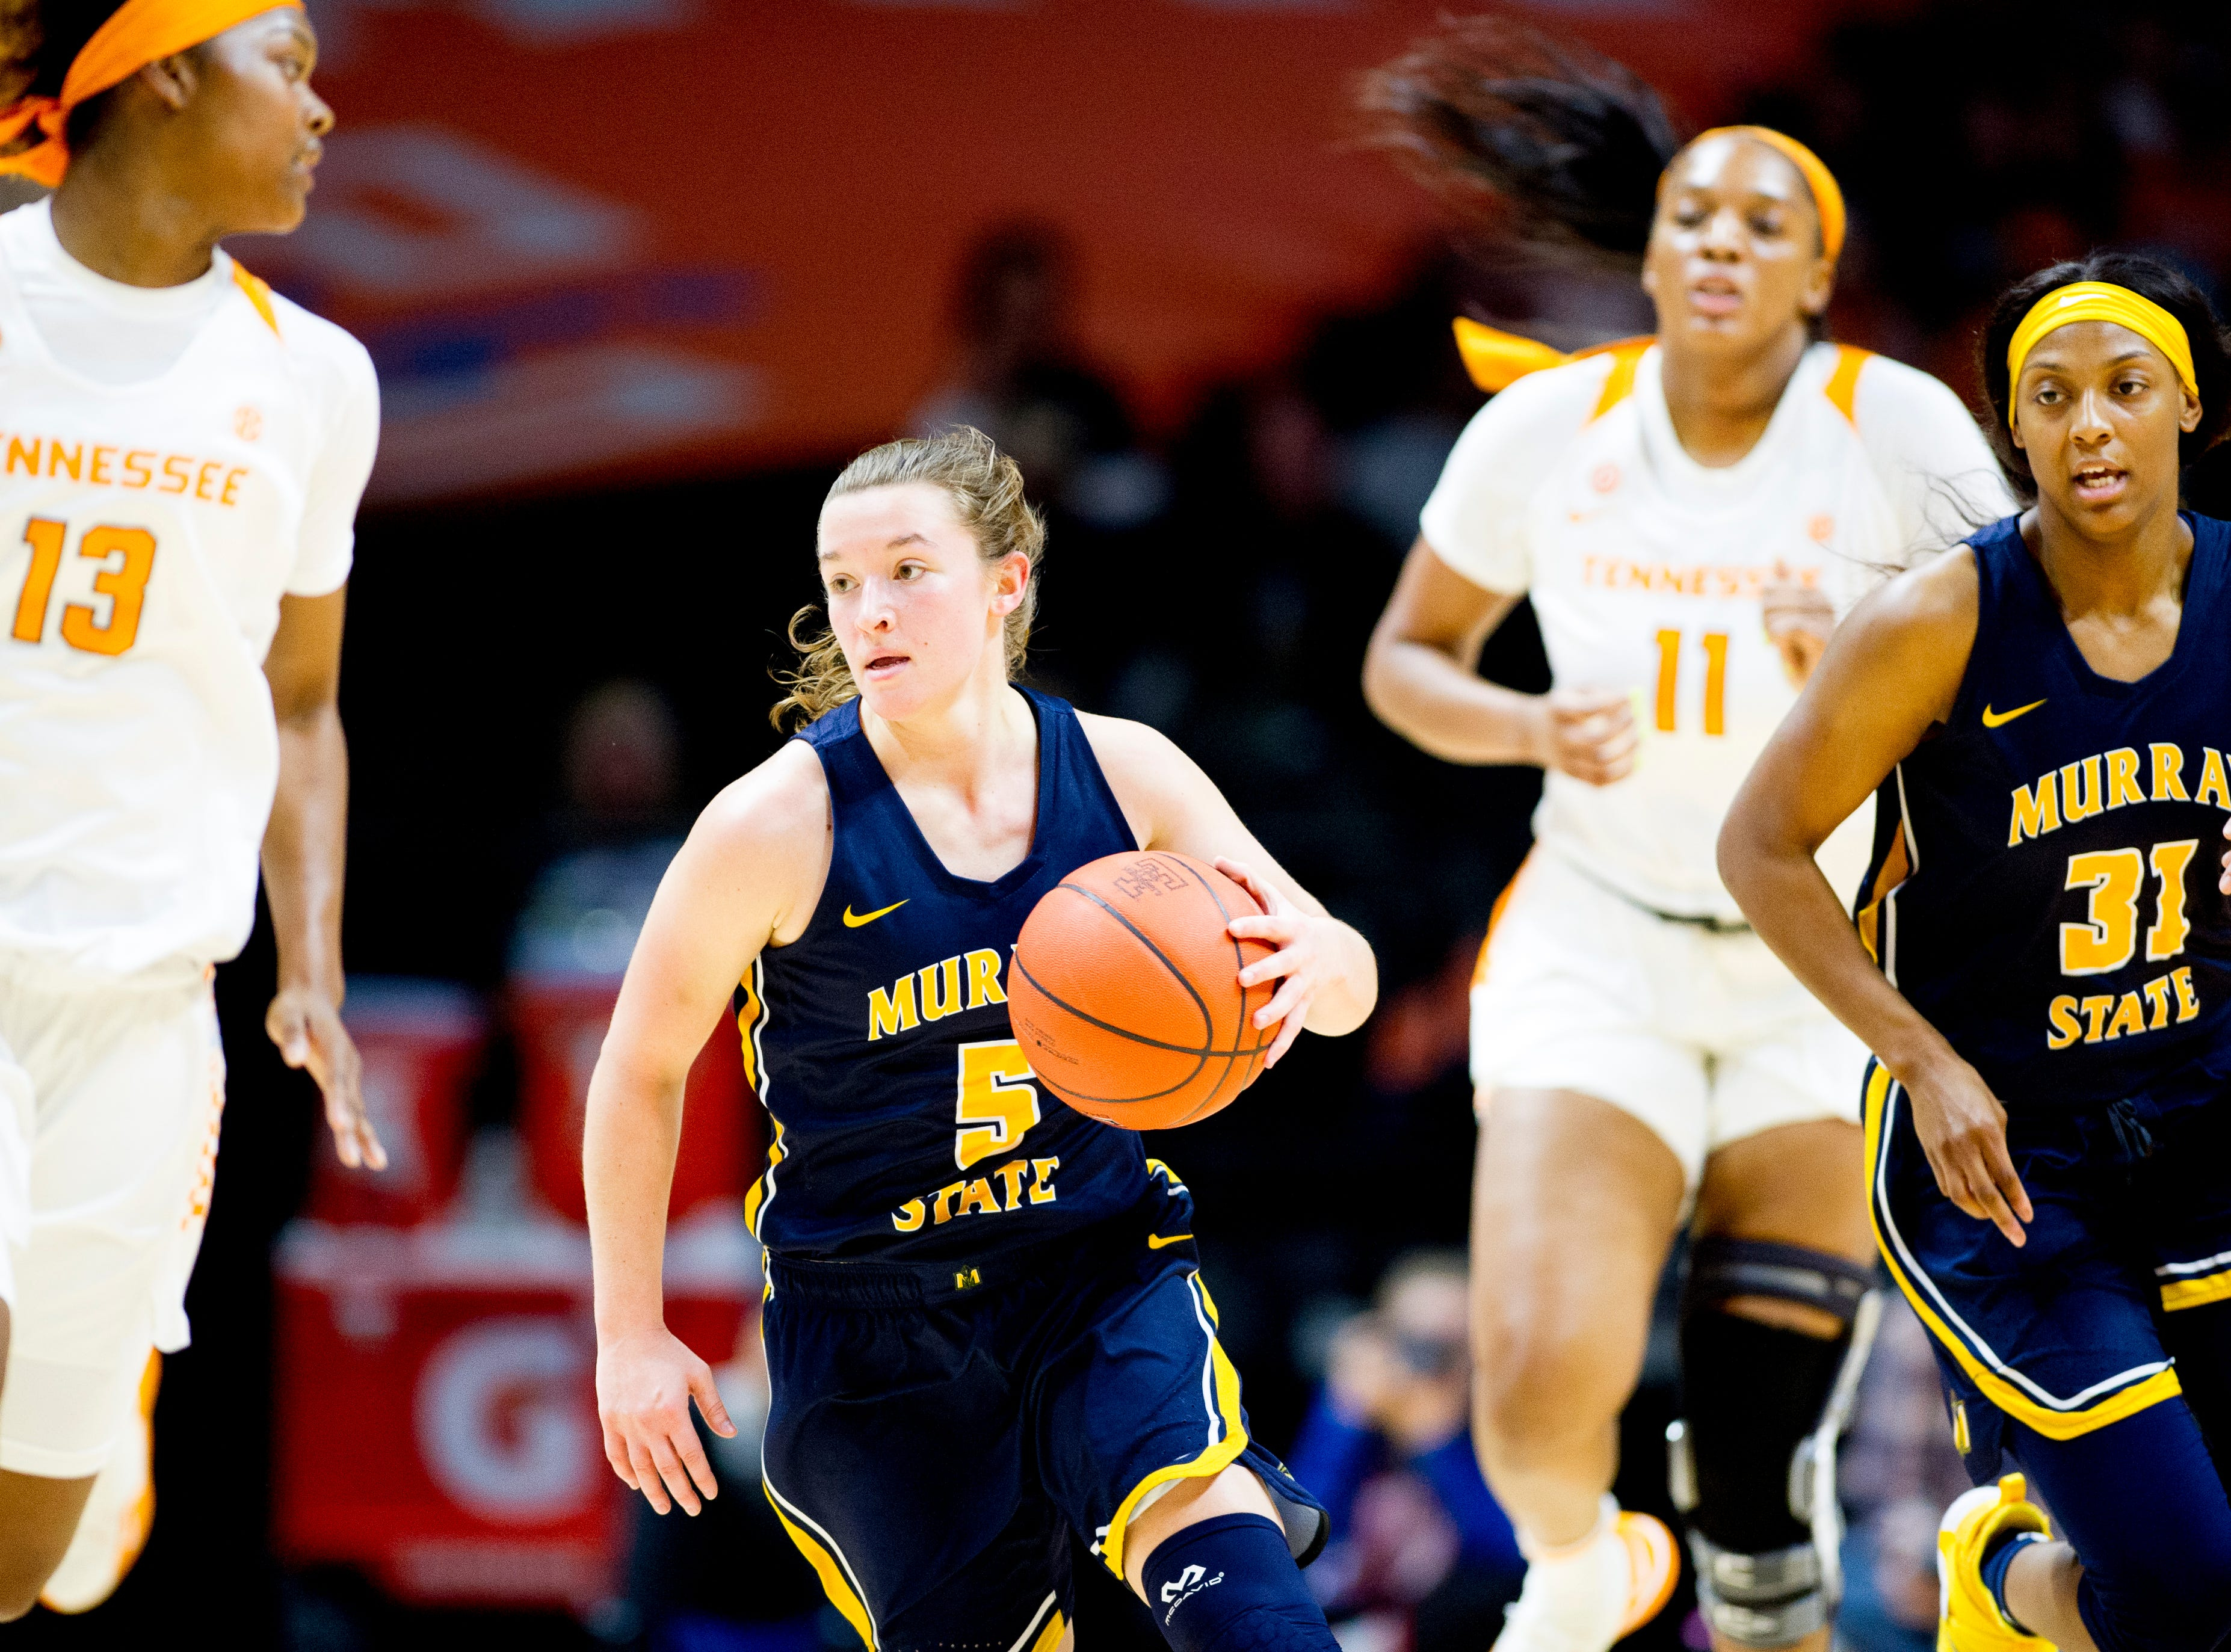 Murray State guard Macey Turley (5) dribbles down the court during a game between the Tennessee Lady Vols and Murray State at Thompson-Boling Arena in Knoxville, Tennessee on Friday, December 28, 2018.